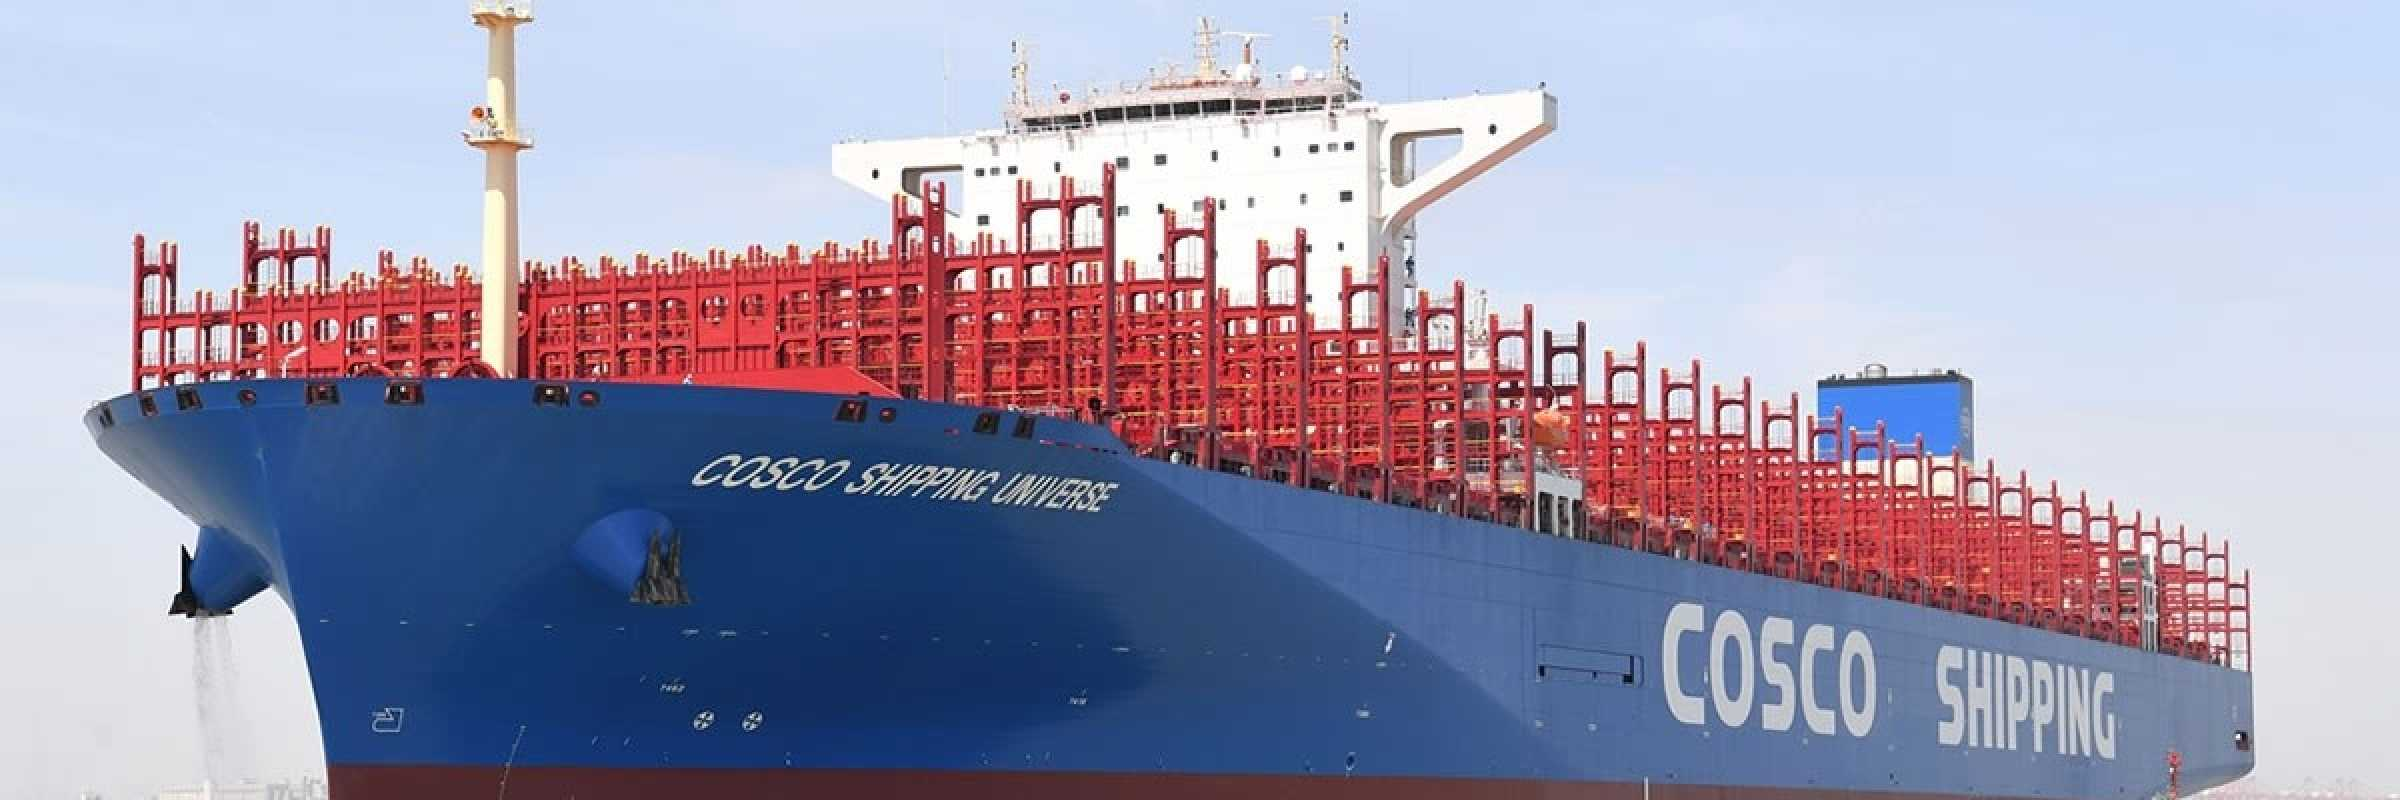 COSCO Shipping Universe equipped with ABB Turbochargers